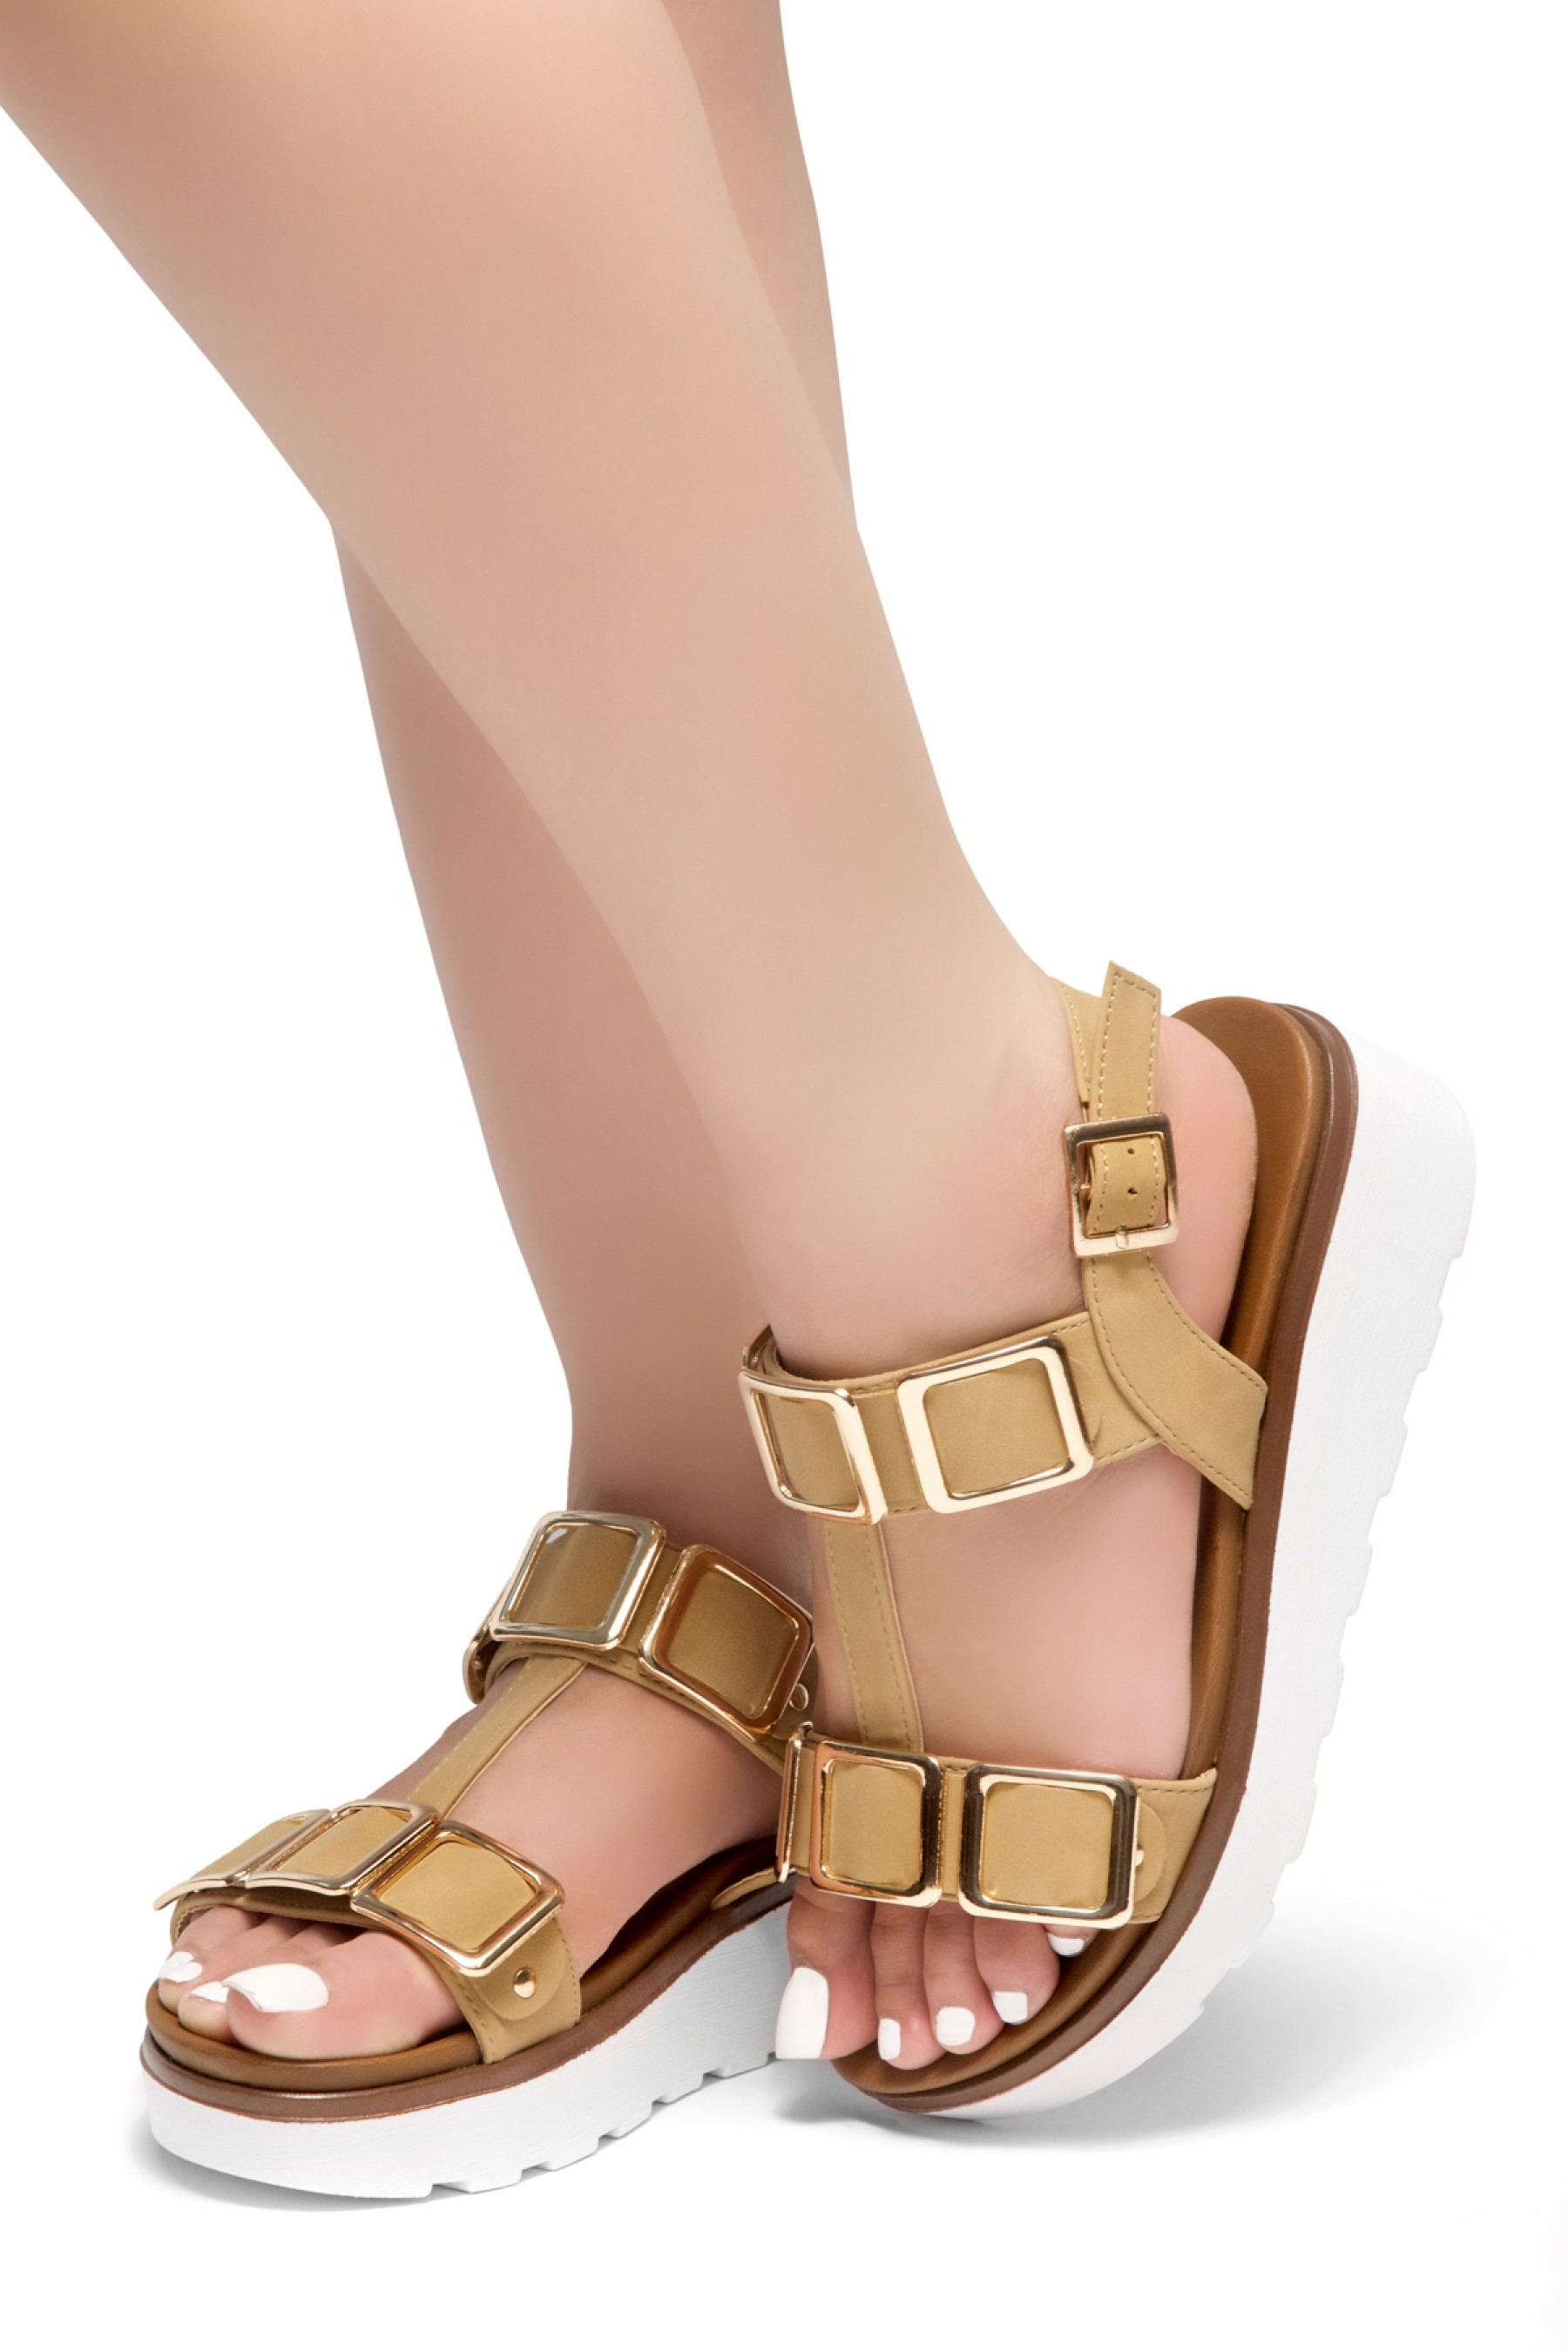 HerStyle Kimmie- Open Toe Buckle Decorative Vamp Platform Heel (Tan)